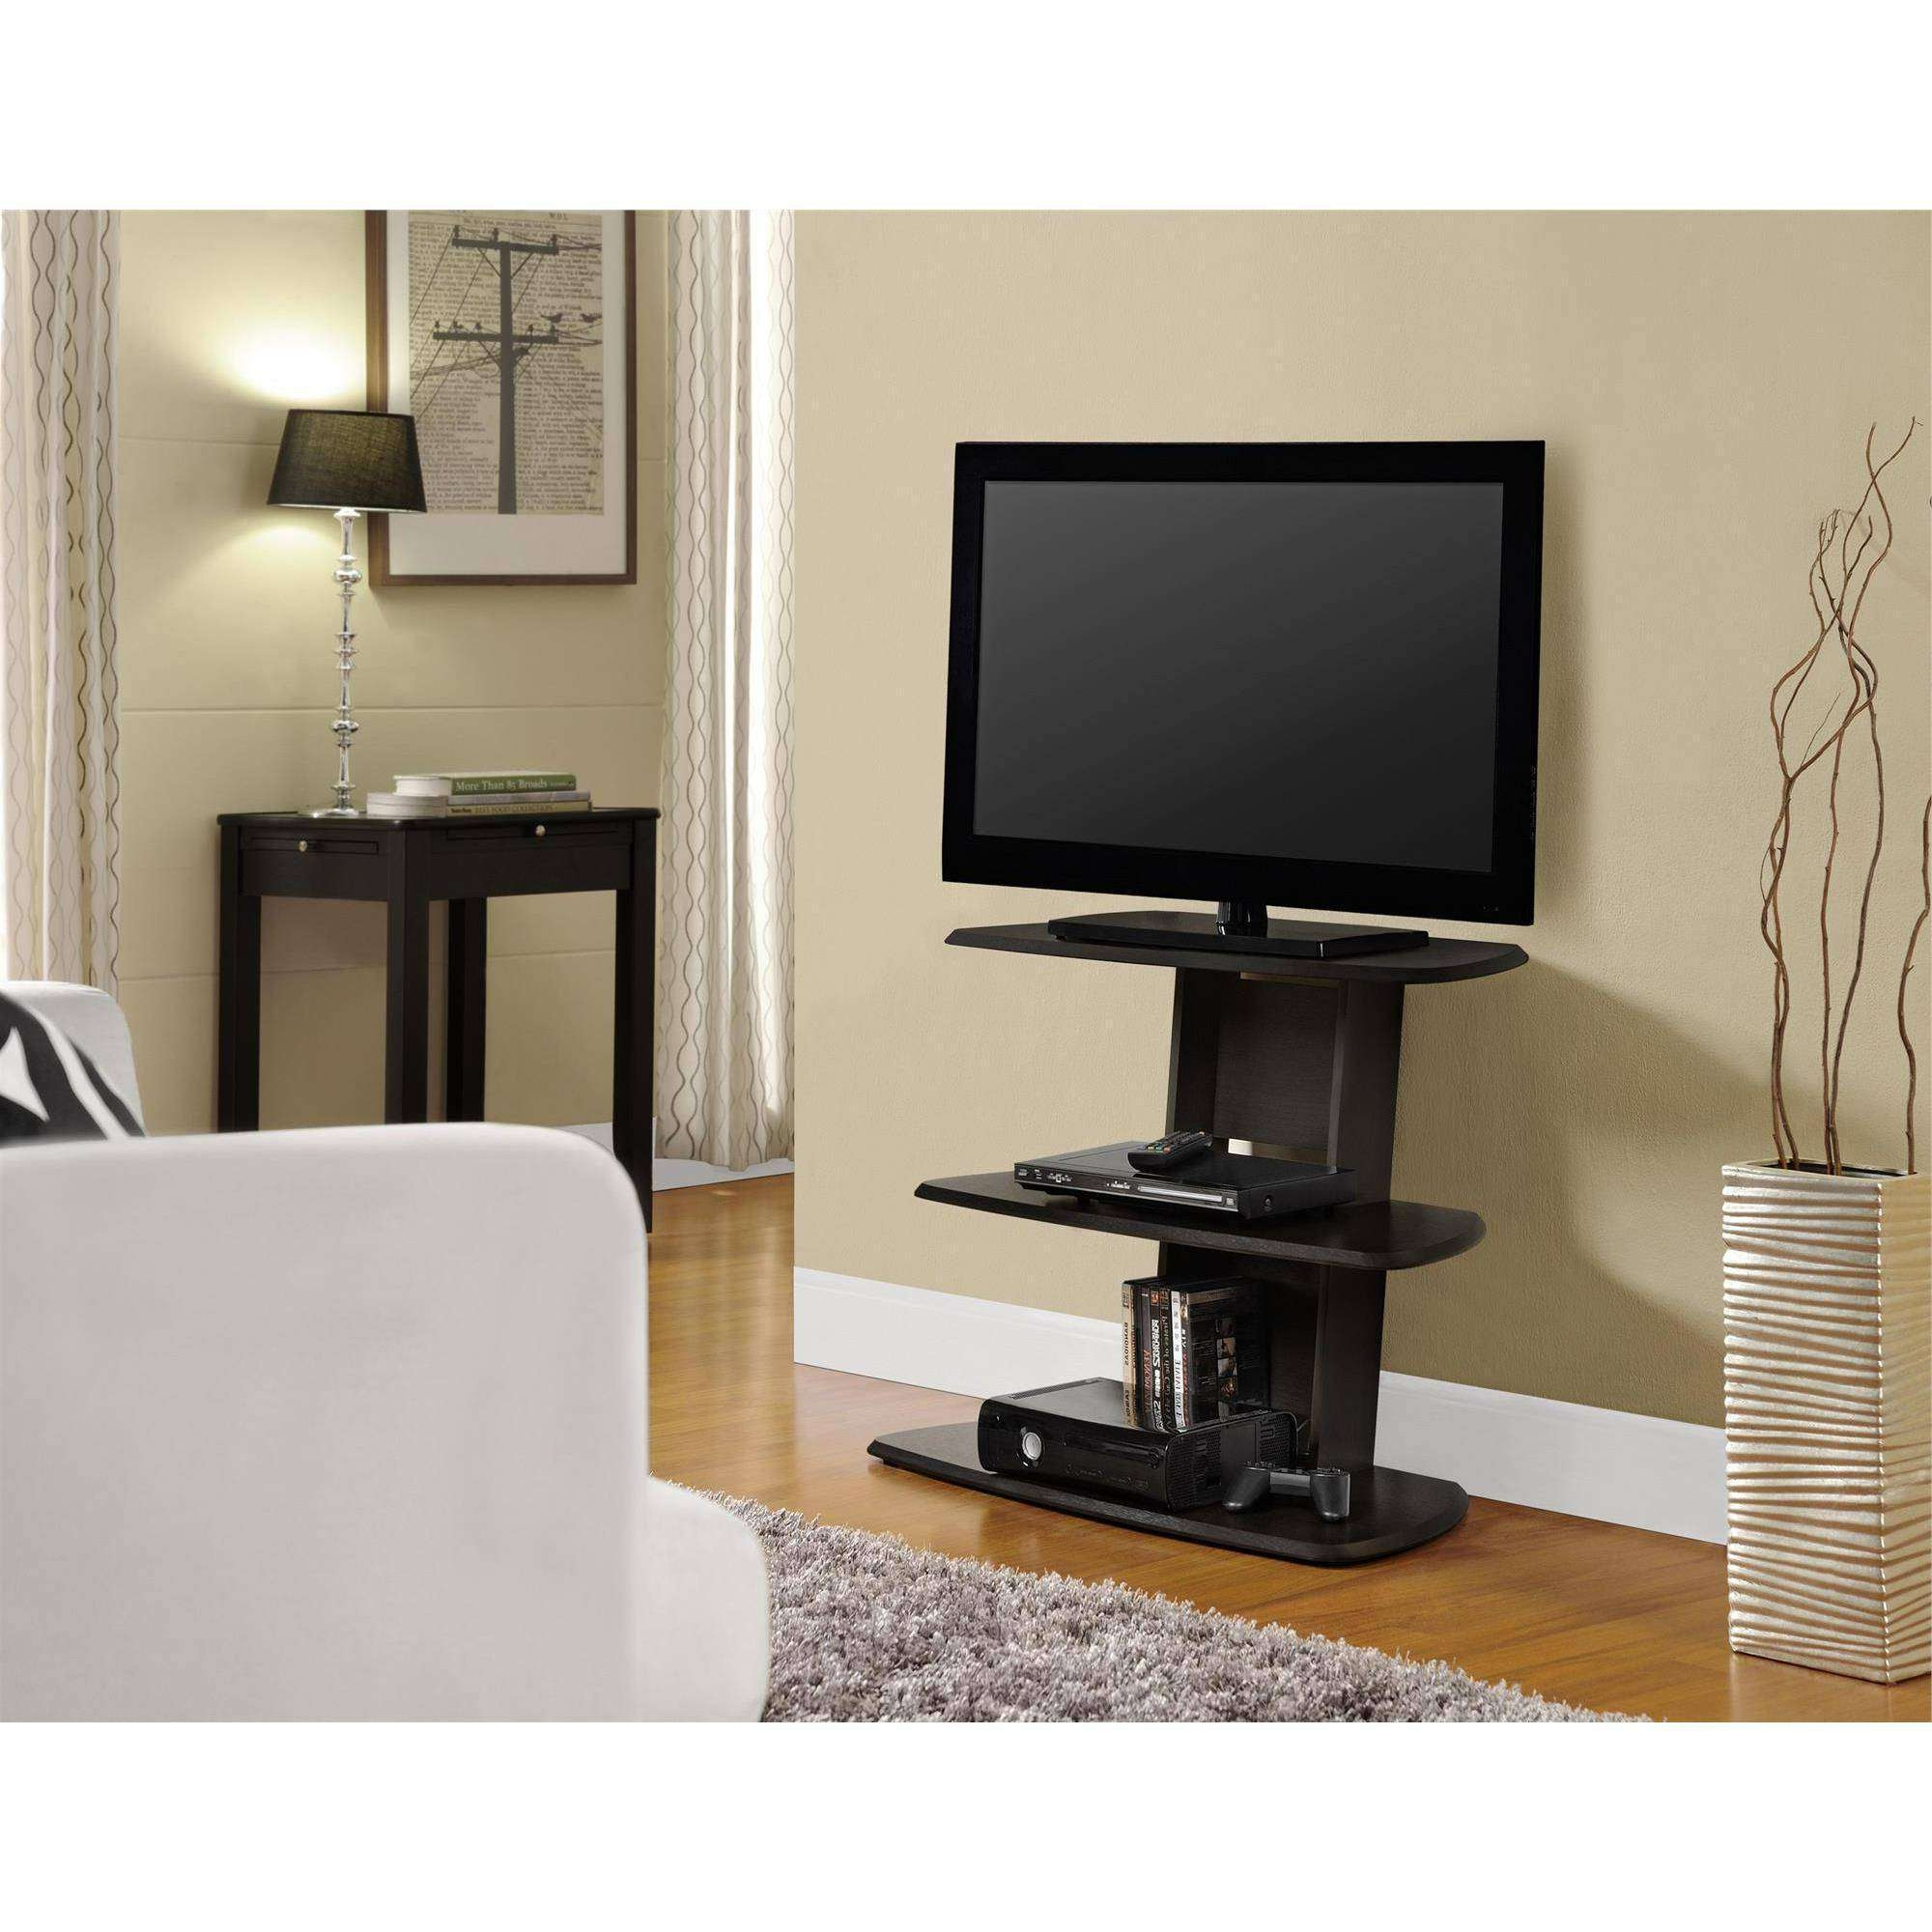 32 Inch Tv Stands Within 24 Inch Led Tv Stands (View 2 of 15)